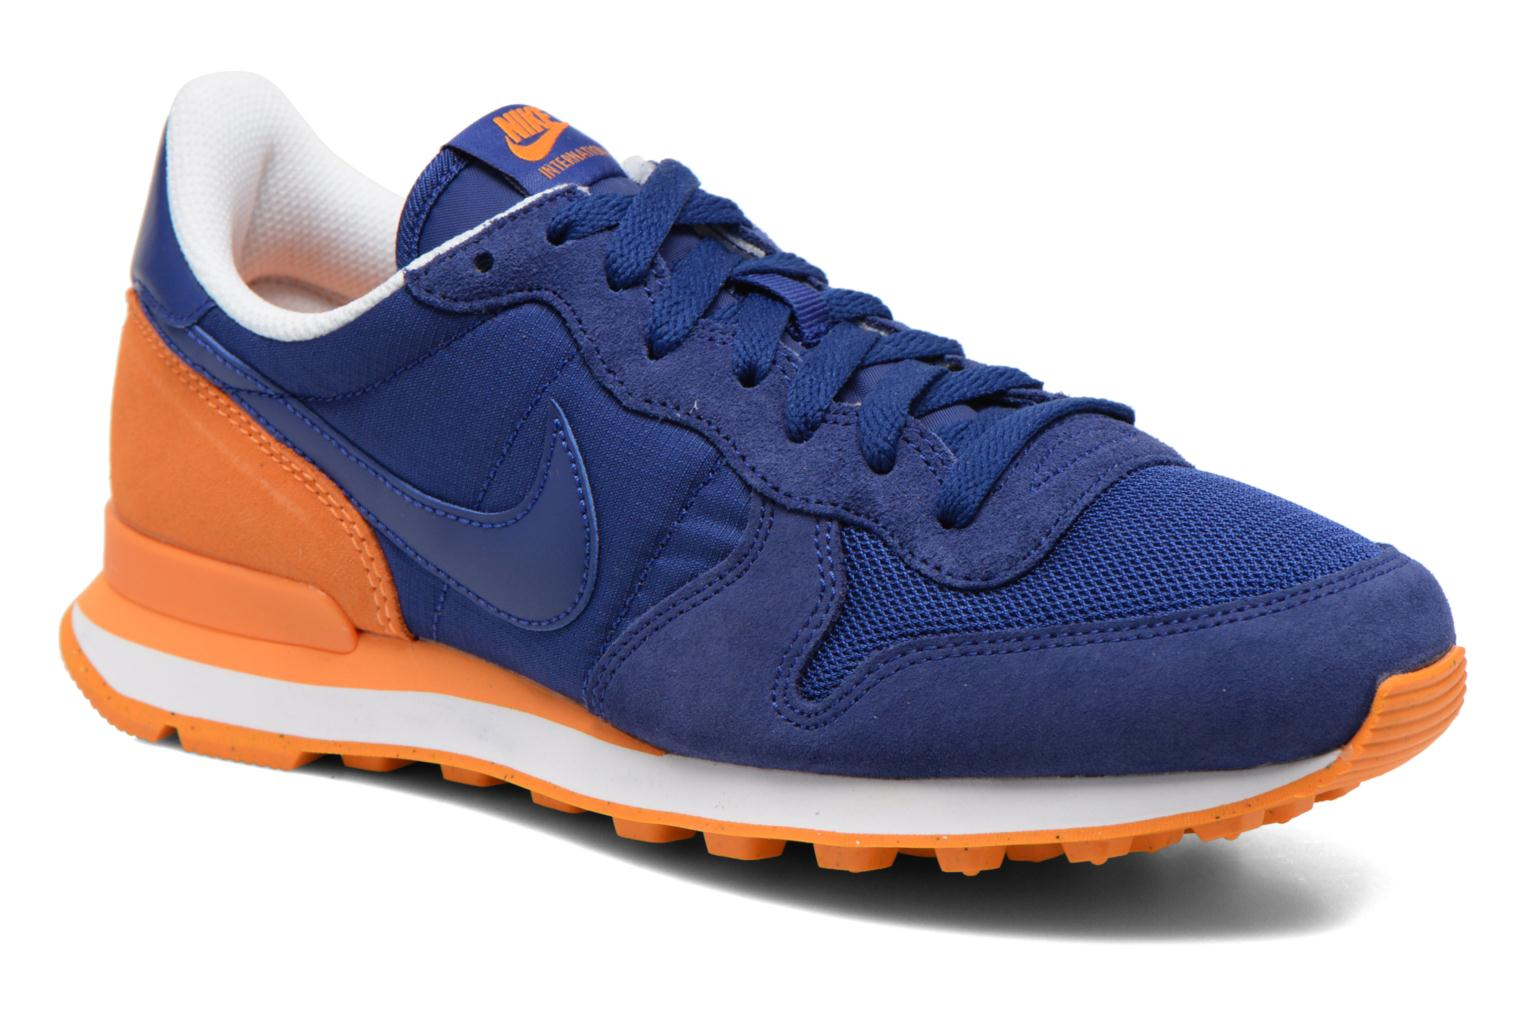 Nike Internationalist Dp Ryl Blue/Dp Ryl Bl-Vvd Orng